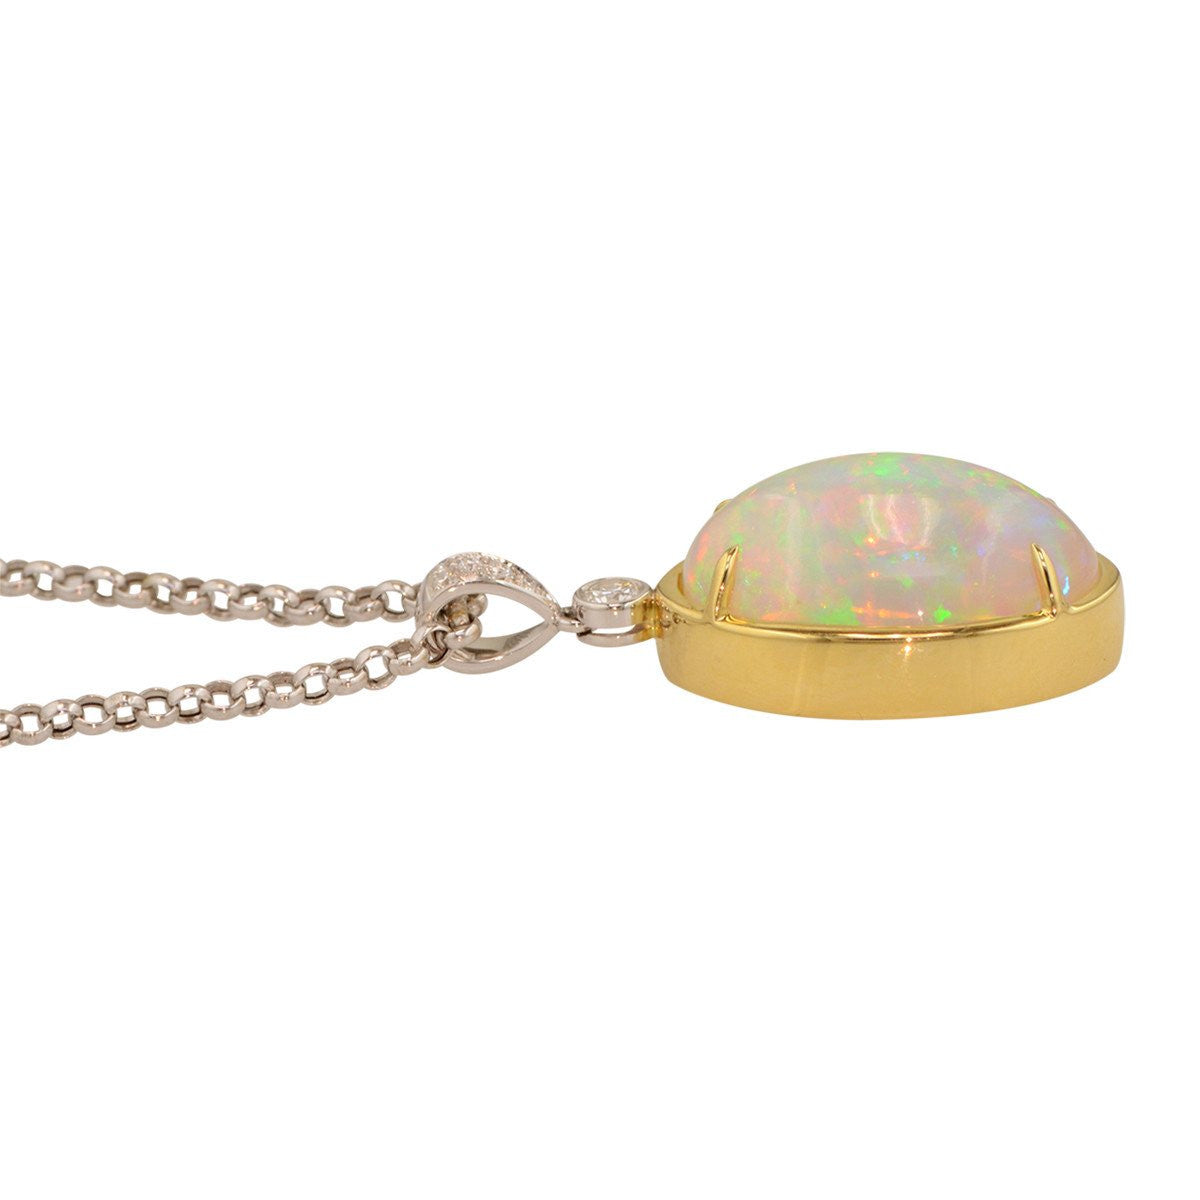 Ethiopian opal pendant smith and bevill jewelers exceptional ethiopian opal pendant mozeypictures Choice Image